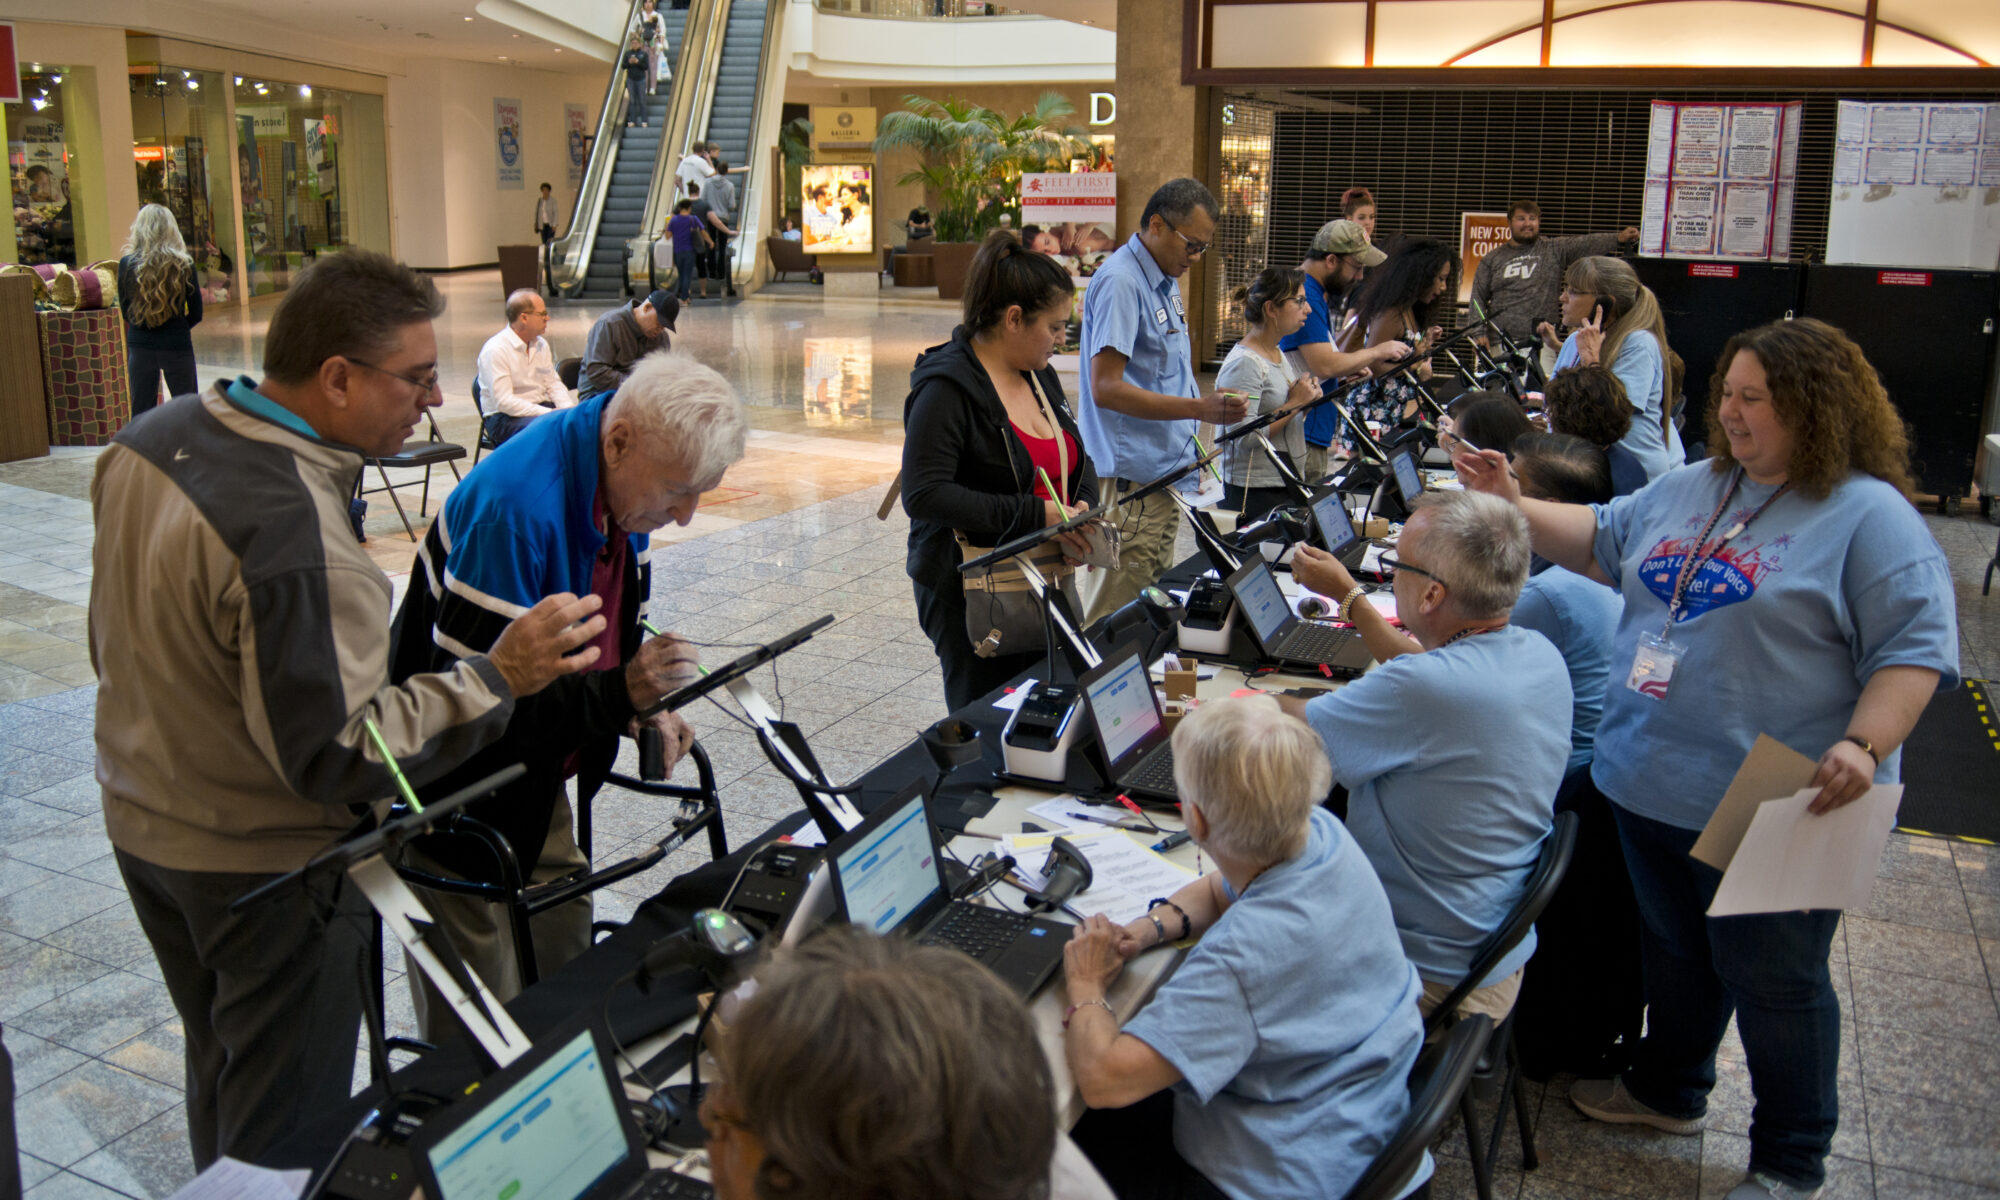 Voters at Galleria at Sunset voting center